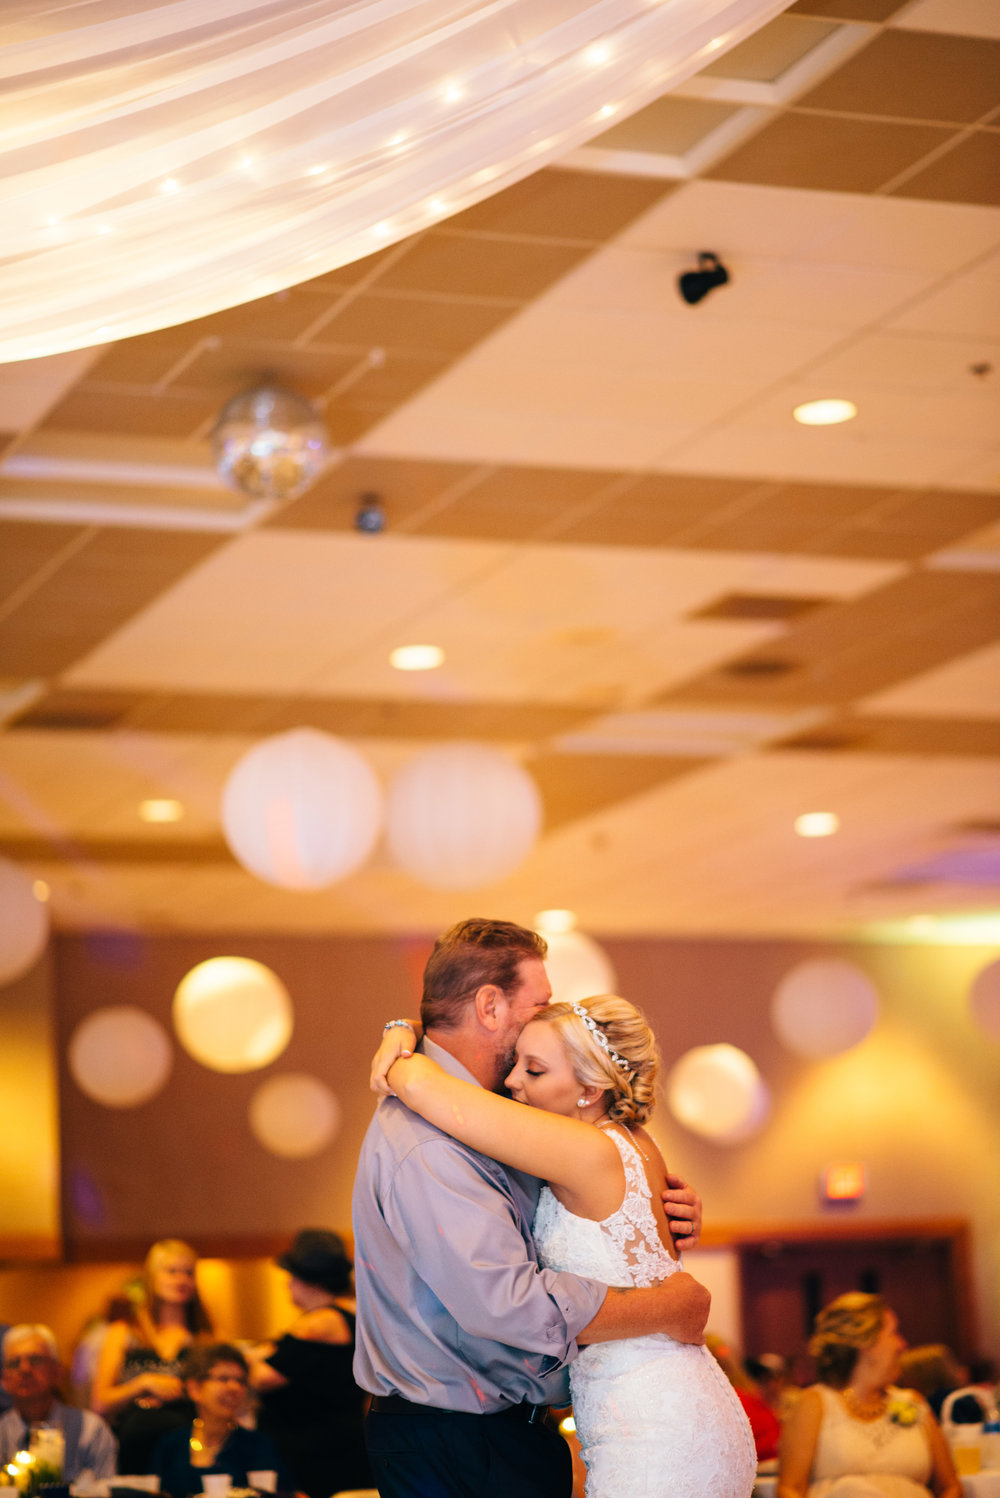 Father daughter dance during wedding reception at Carrolltown Fire Co. Banquet Hall